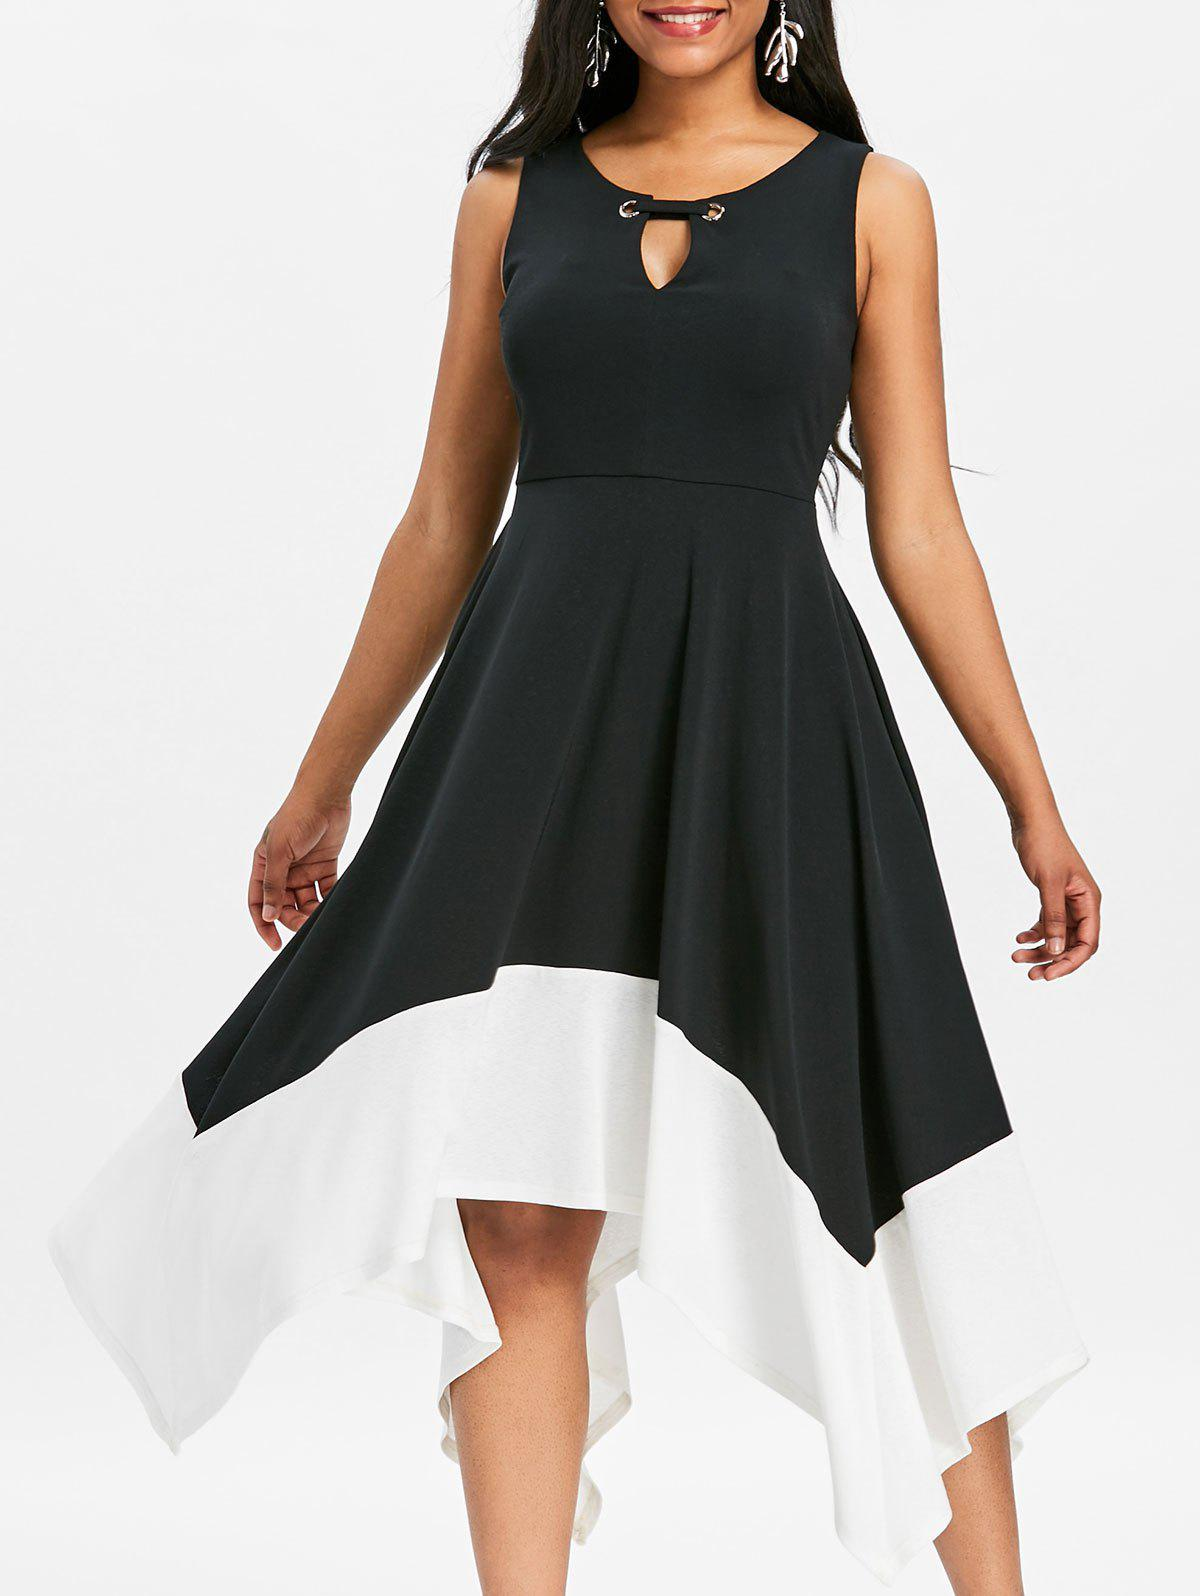 Keyhole Two Tone Midi Handkerchief Dress - BLACK 2XL